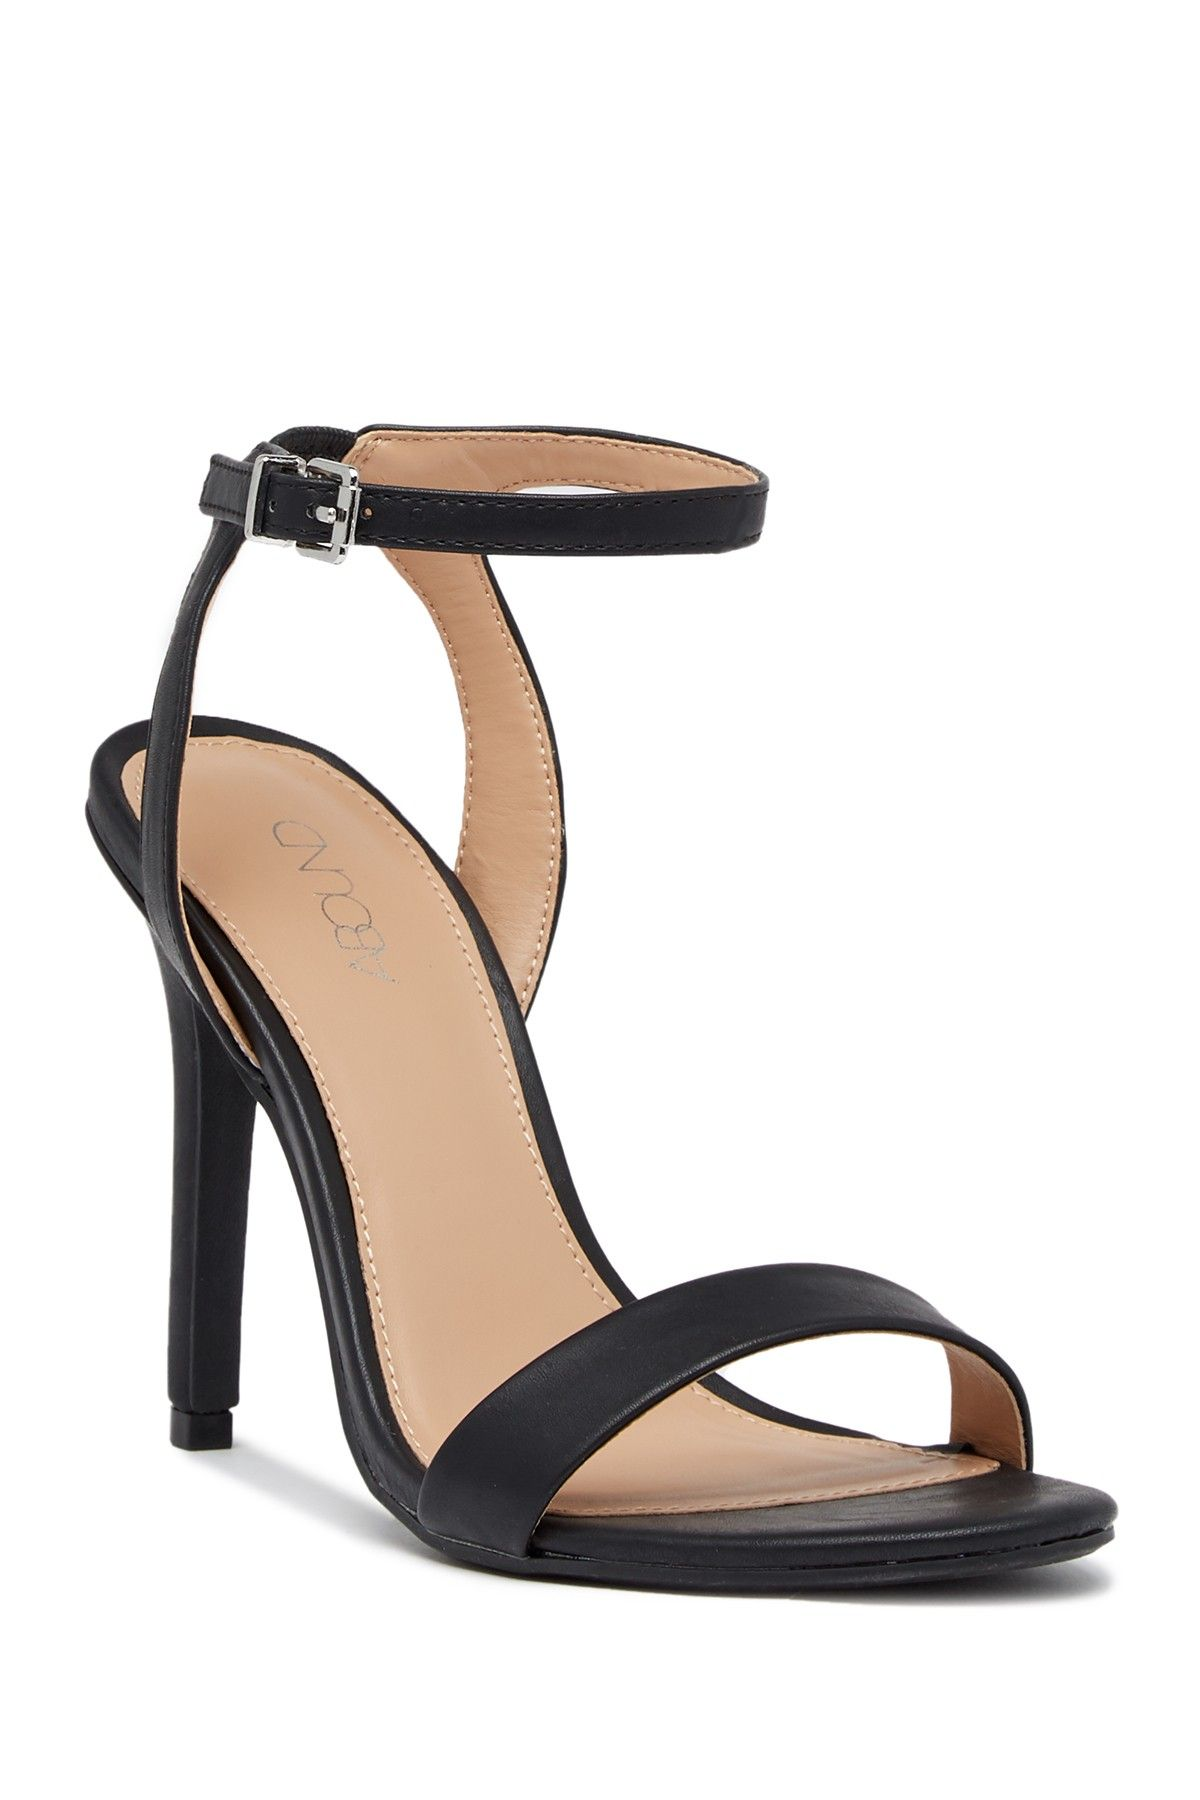 Abound Baxter Ankle Strap Sandal - Wide Width Available mBHtkB